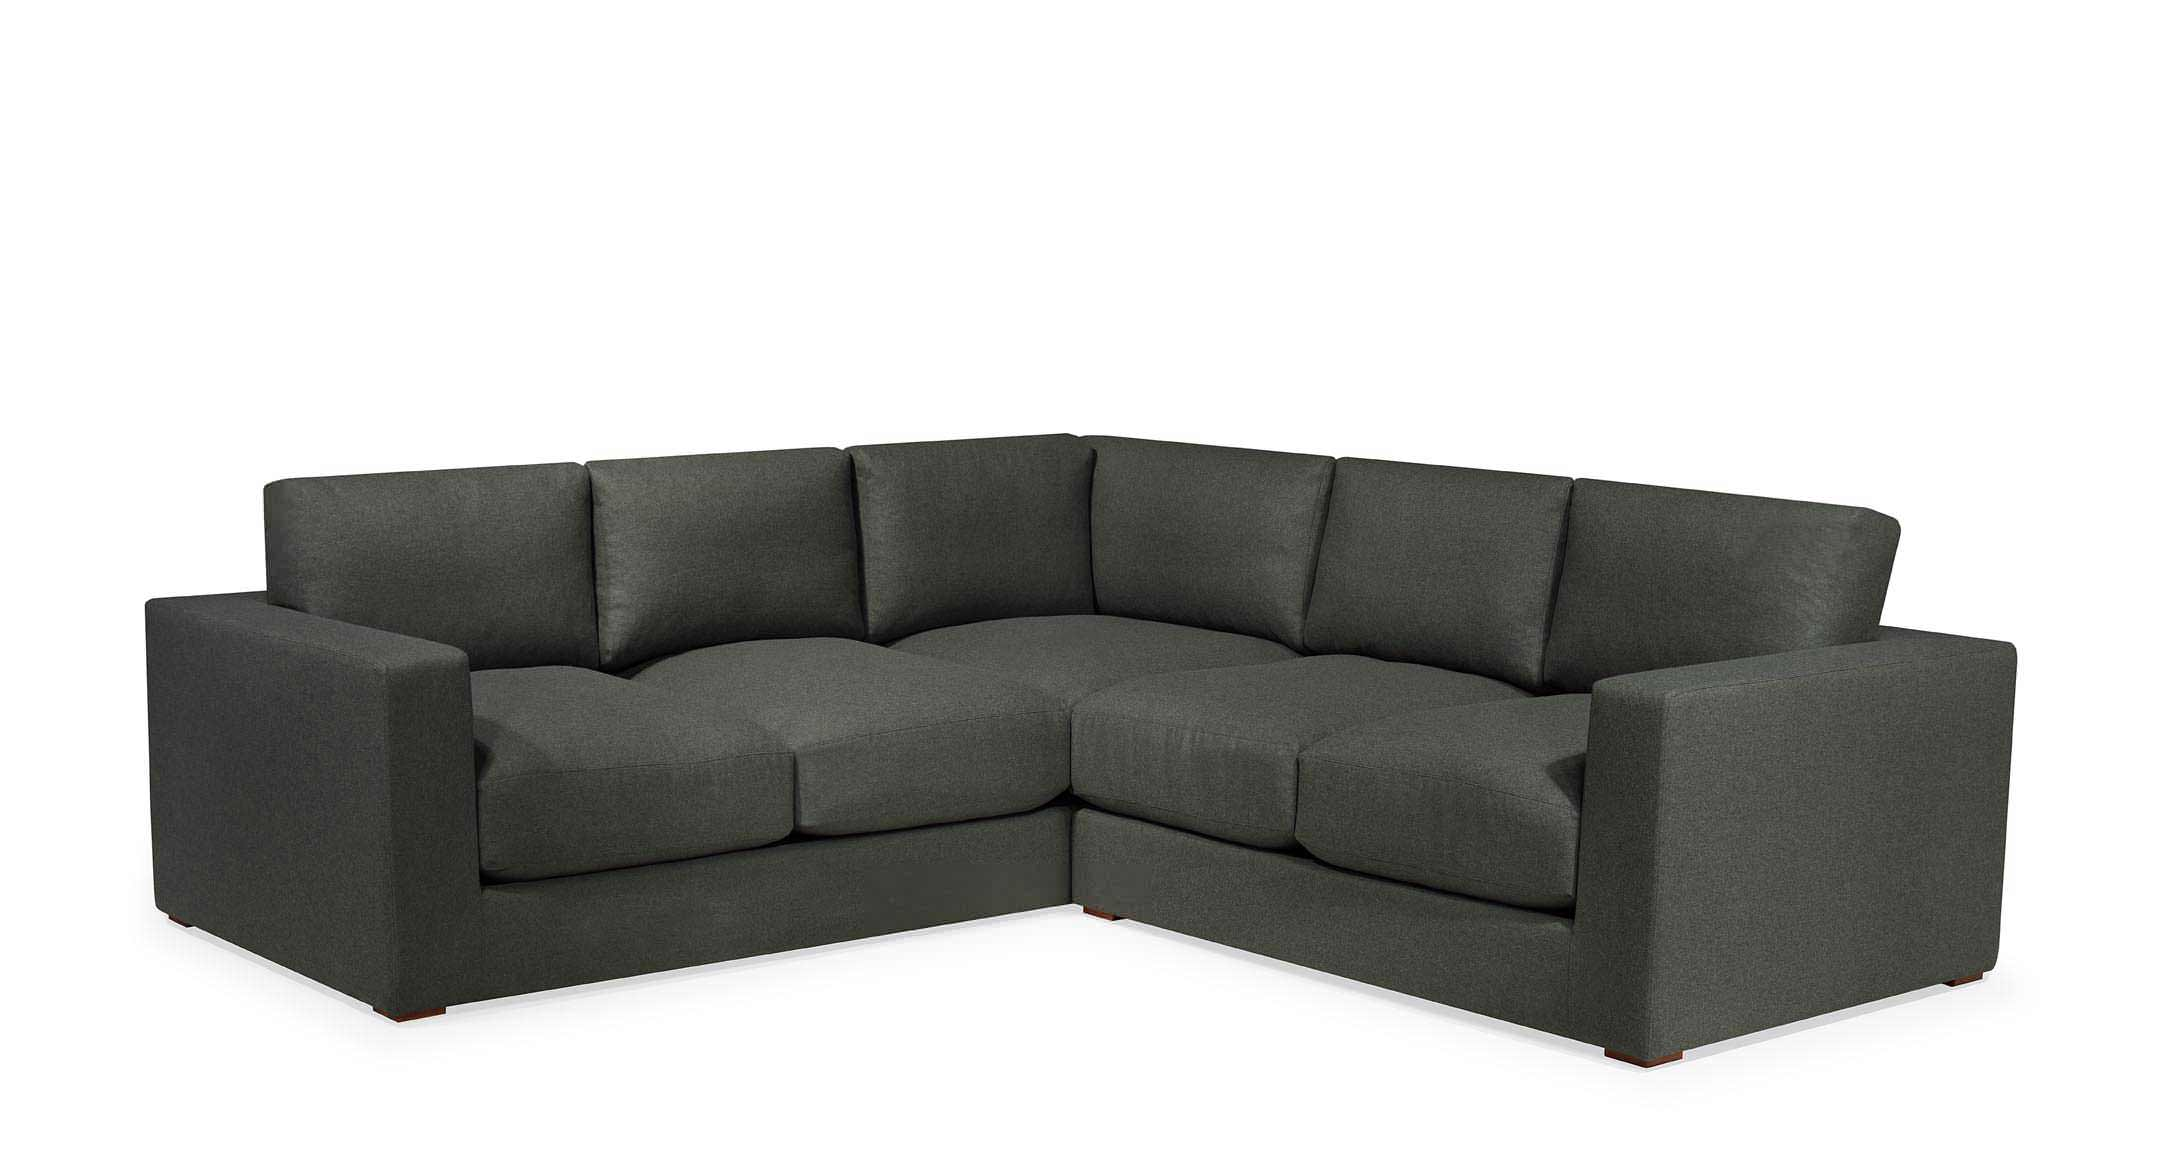 Sumptuous corner sofa - Products